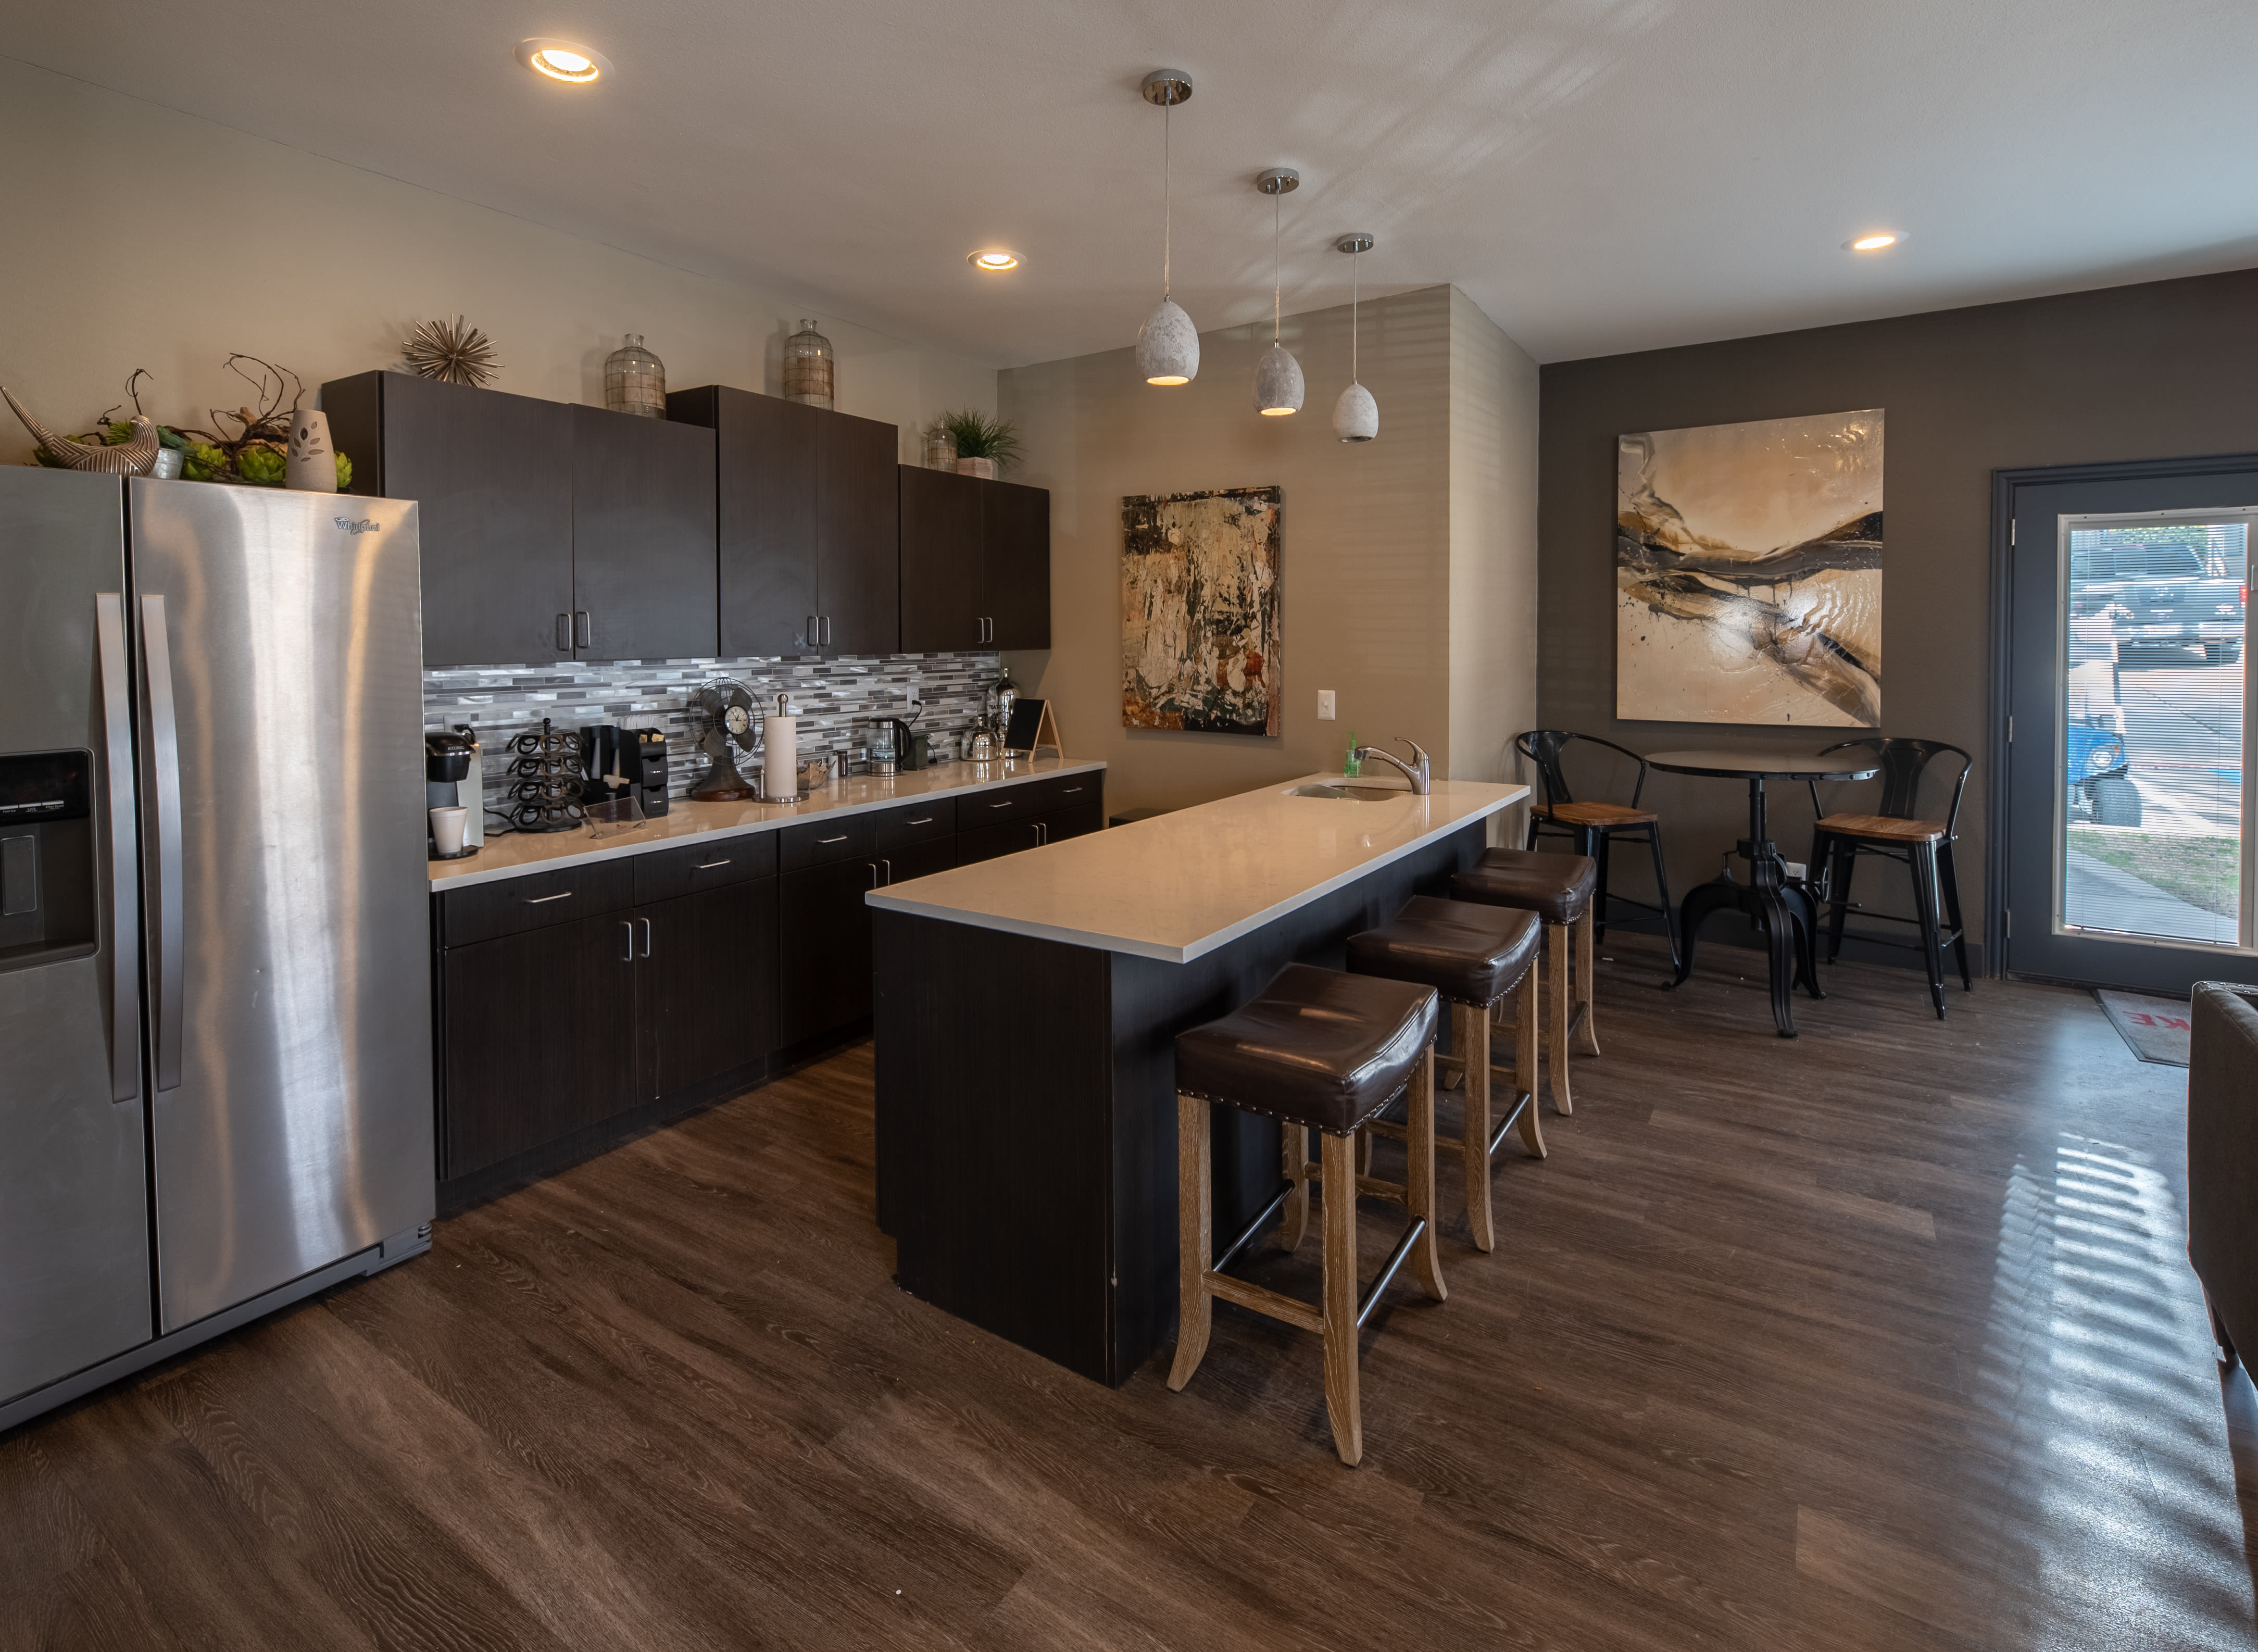 Modern kitchen with stainless steel appliances and granite countertops at Trails of Towne Lake in Irving, Texas